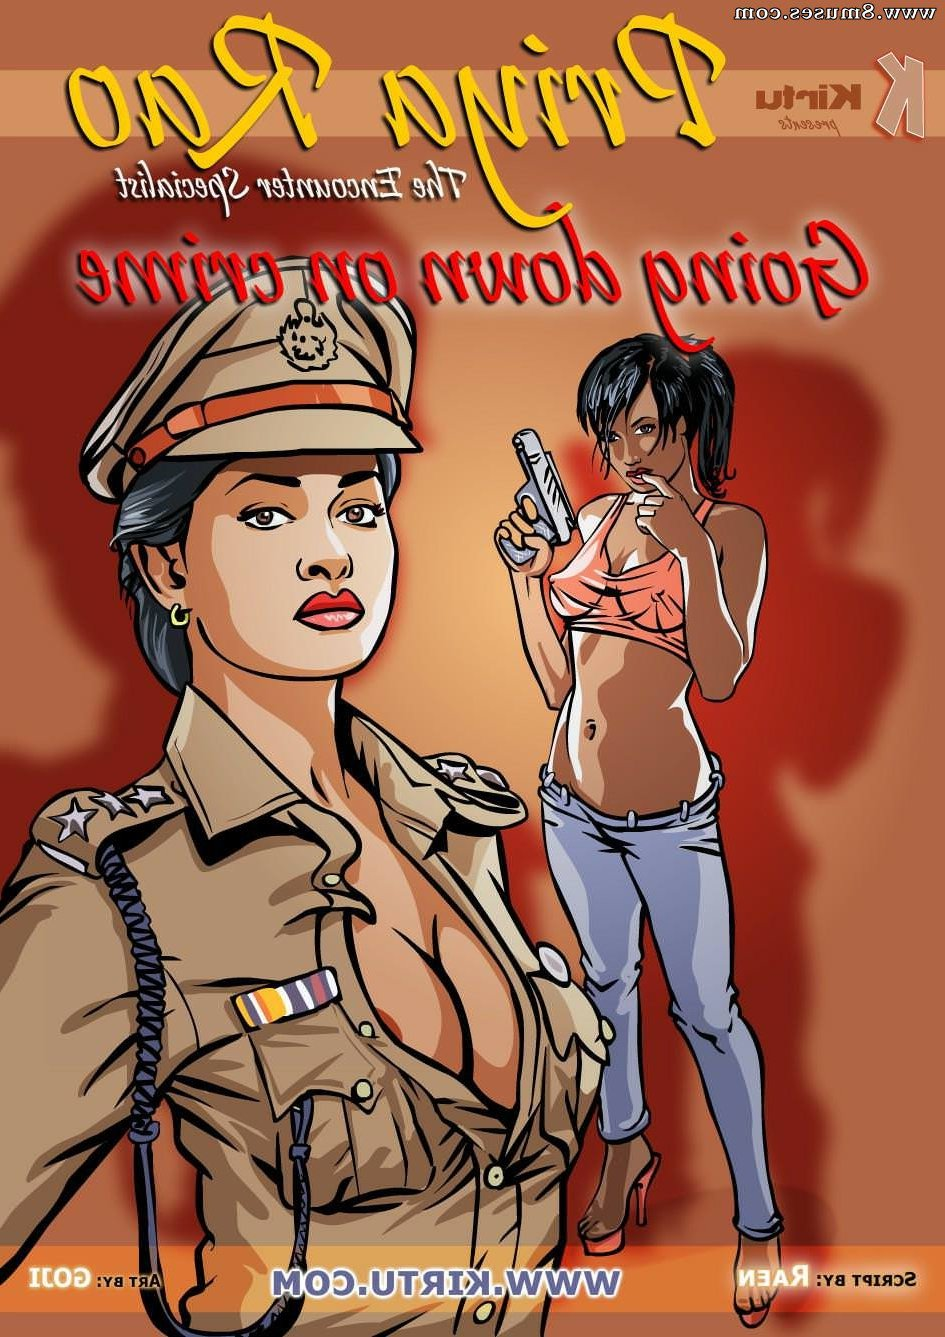 Kirtu_com-Comics/Priya-Rao-The-Encounter-Specialist/Issue-1 Priya_Rao_-_The_Encounter_Specialist_-_Issue_1.jpg